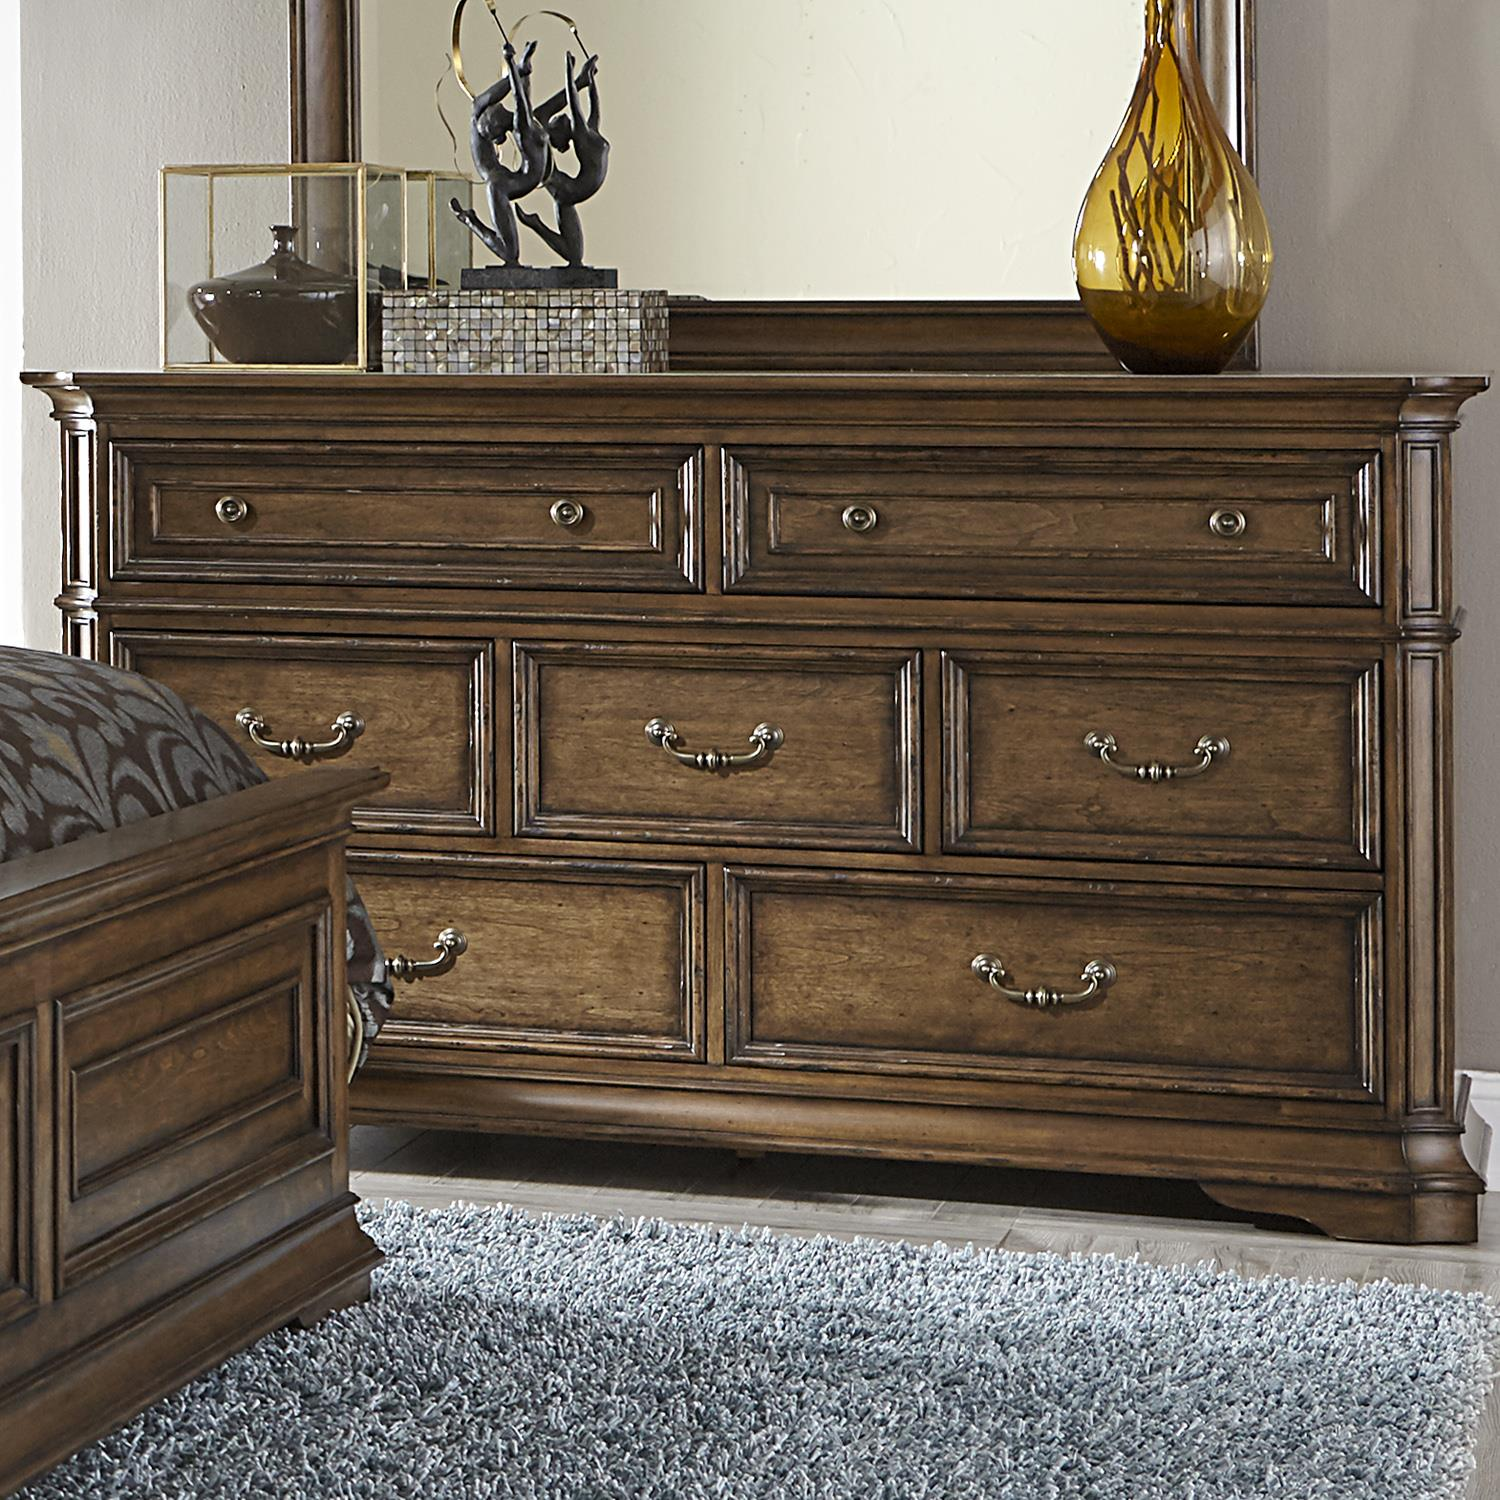 Liberty Furniture Amelia 7-Drawer Dresser - Item Number: 487-BR31